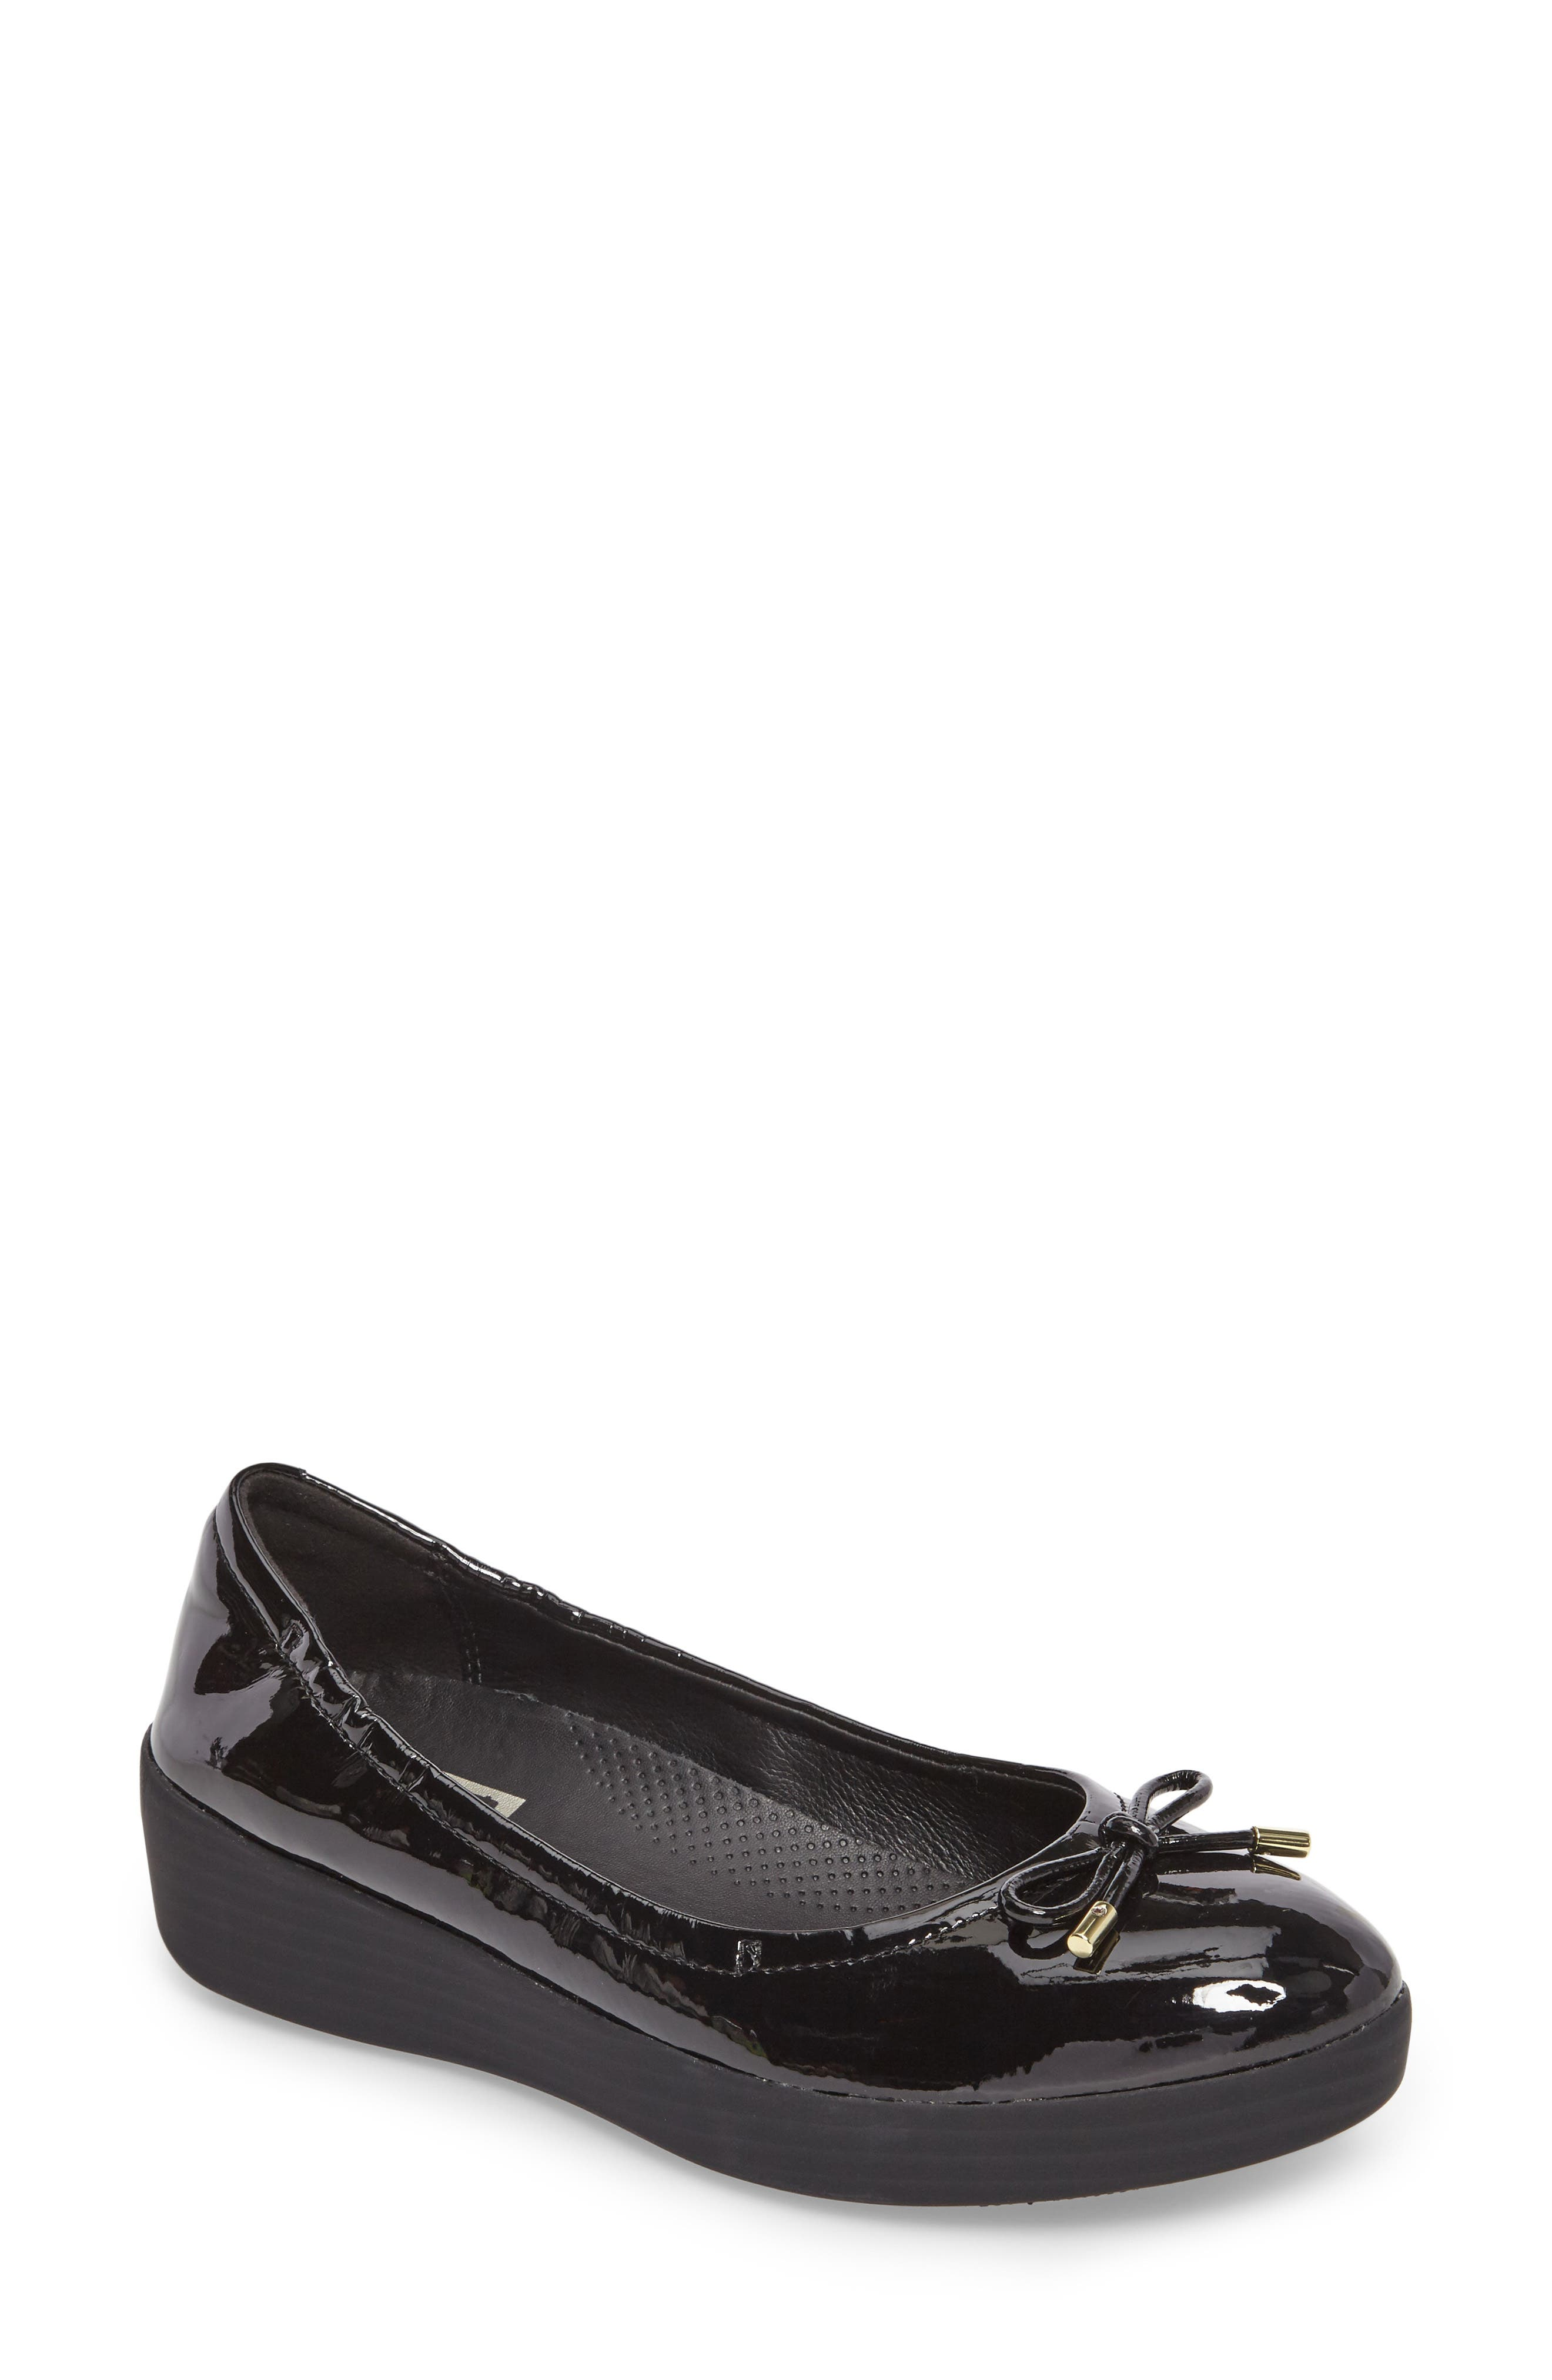 SuperBendy<sup>™</sup> Ballet Flat,                             Main thumbnail 1, color,                             Black Faux Patent